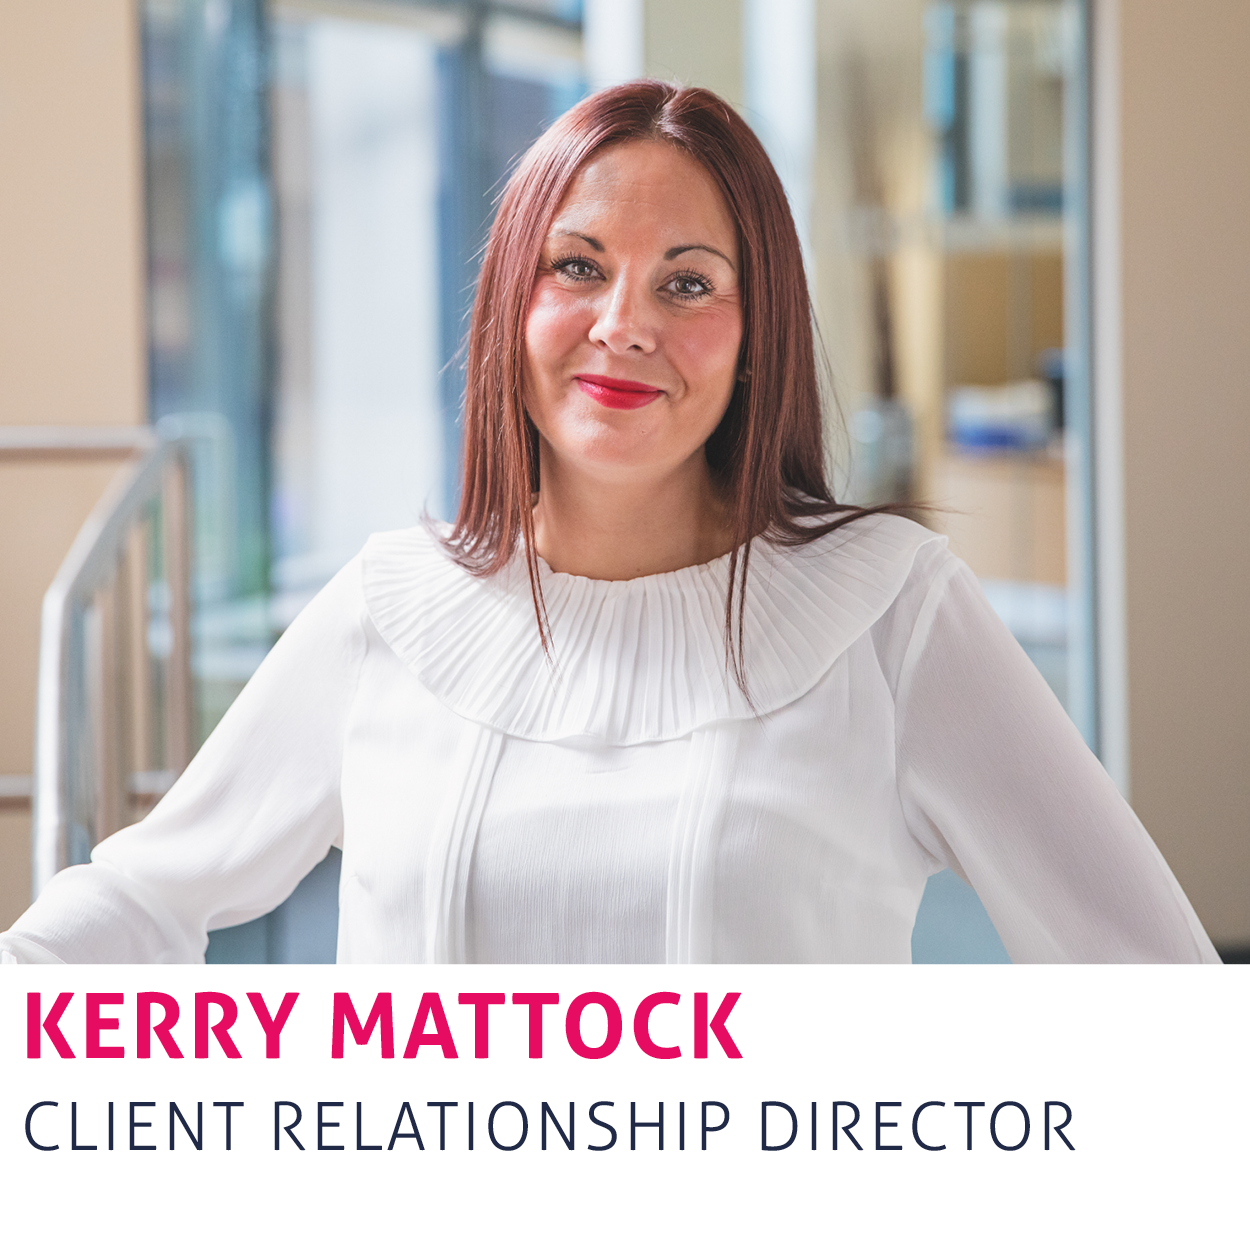 Copy of Kerry Mattock - Client Relationship Director